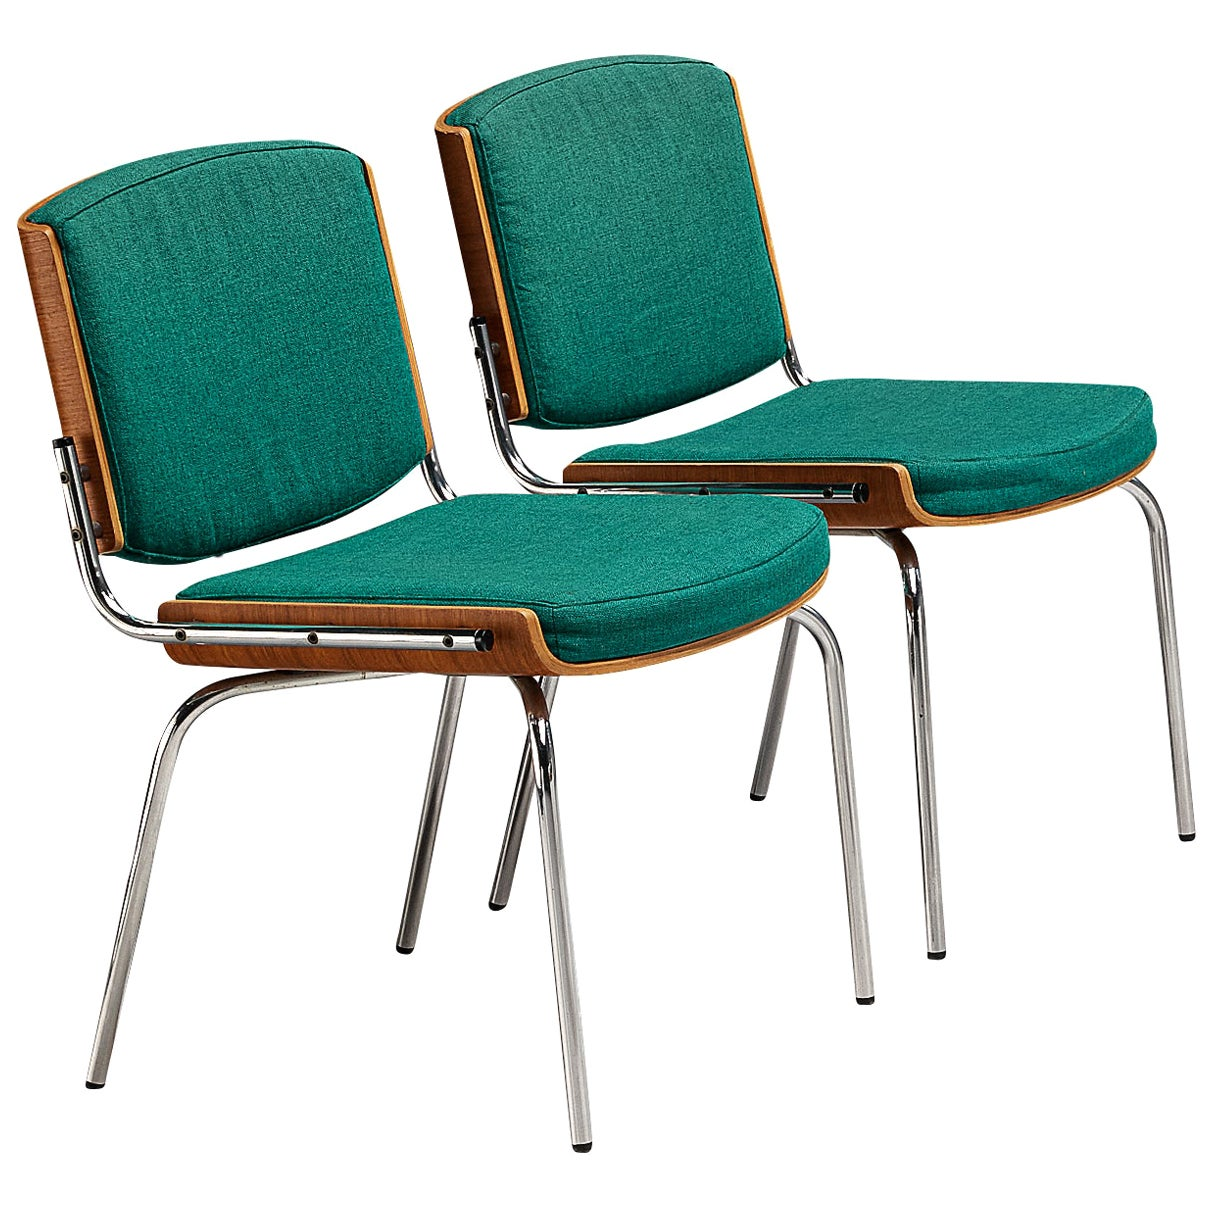 Pair of Danish Chairs in Teak and Green Upholstery